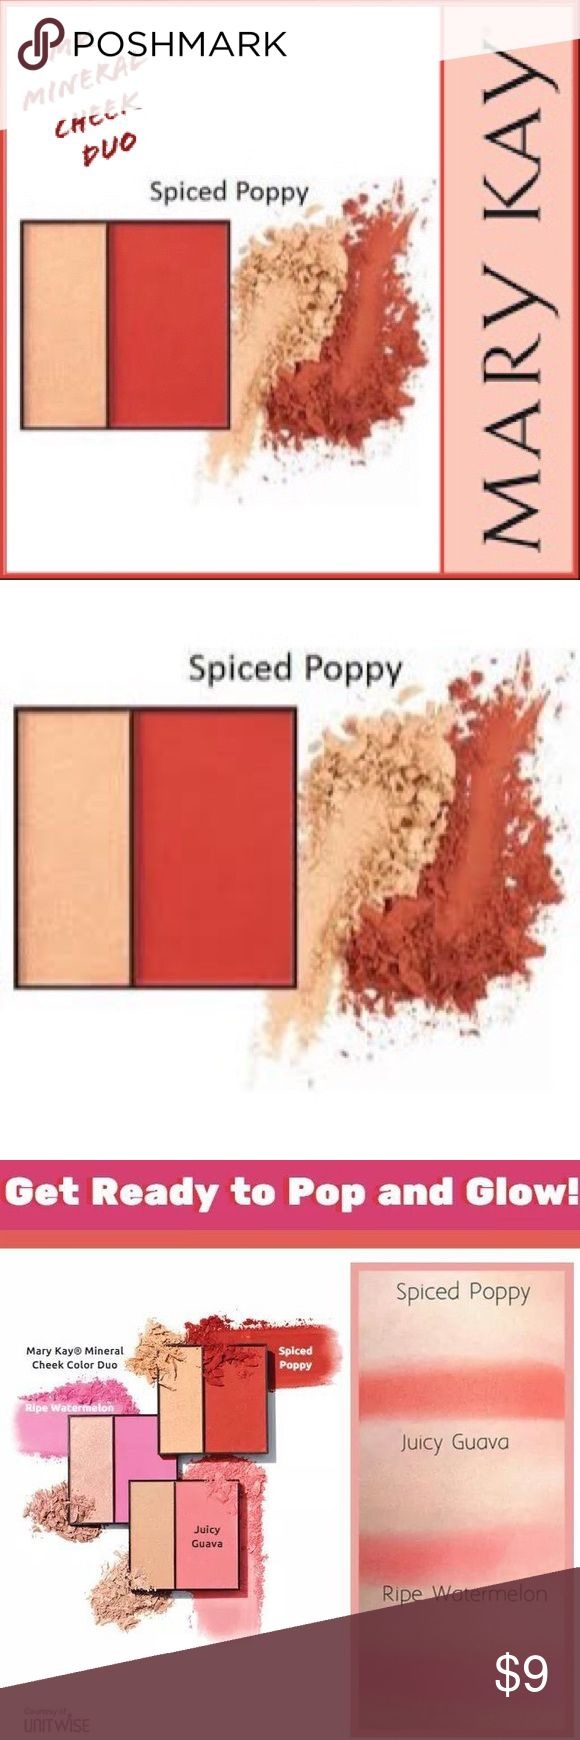 🆕 Mary Kay Mineral Cheek Color Spiced Poppy 🆕 Mary Kay Mineral Cheek Duo Spiced Poppy ( Matte) ▪️Brush on a healthy glow with Mary Kay Mineral Cheek Color Duo. So versatile, it delivers a sheer/saturated glow.  ▪️Rich, vibrant shades are great for any skin tone. ▪️Perfect for creating a radiant, healthy glow. ▪️Palette contains a matte blush + a pearlized highlighting shade. ▪️Great color payoff means you can wear it sheer – or build it up bold! ▪️Cheek color stays true & lasts all day…